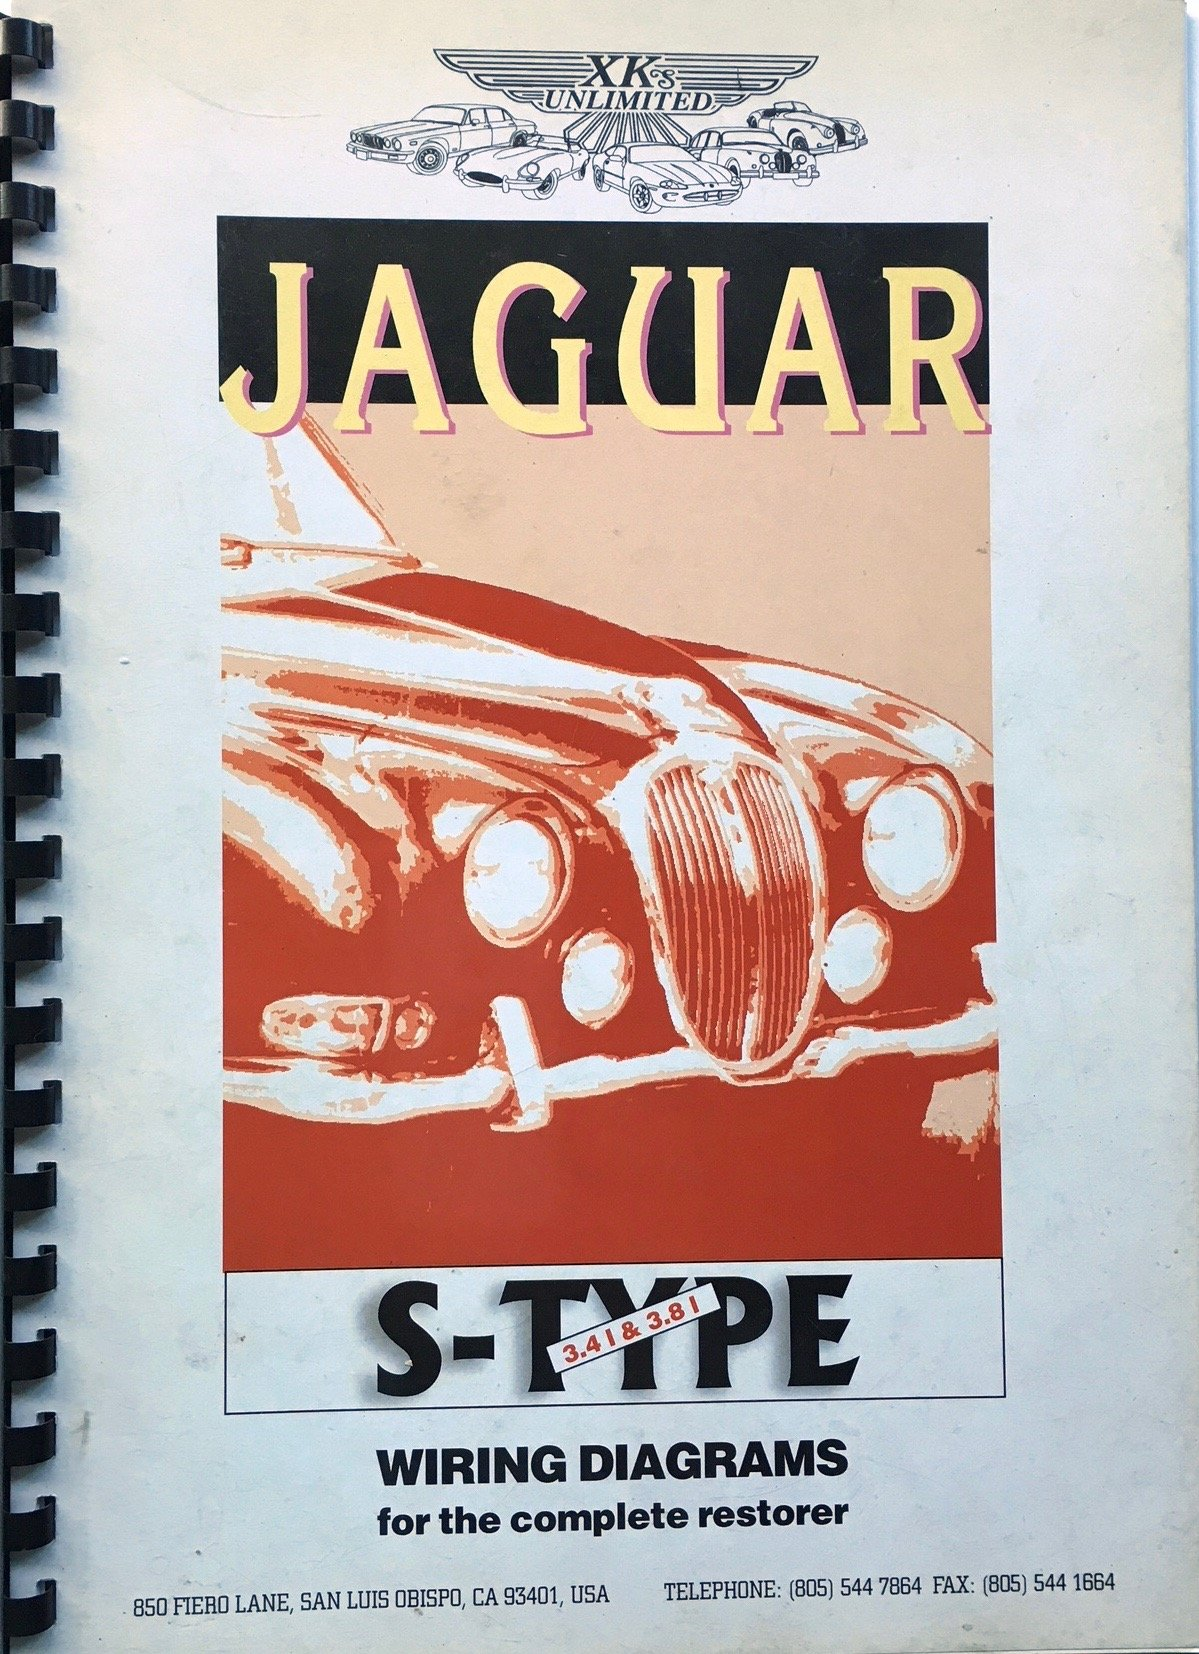 Jaguar S-Type 3.4 & 3.8 Litre Saloons 1963-1968, Wiring ... on